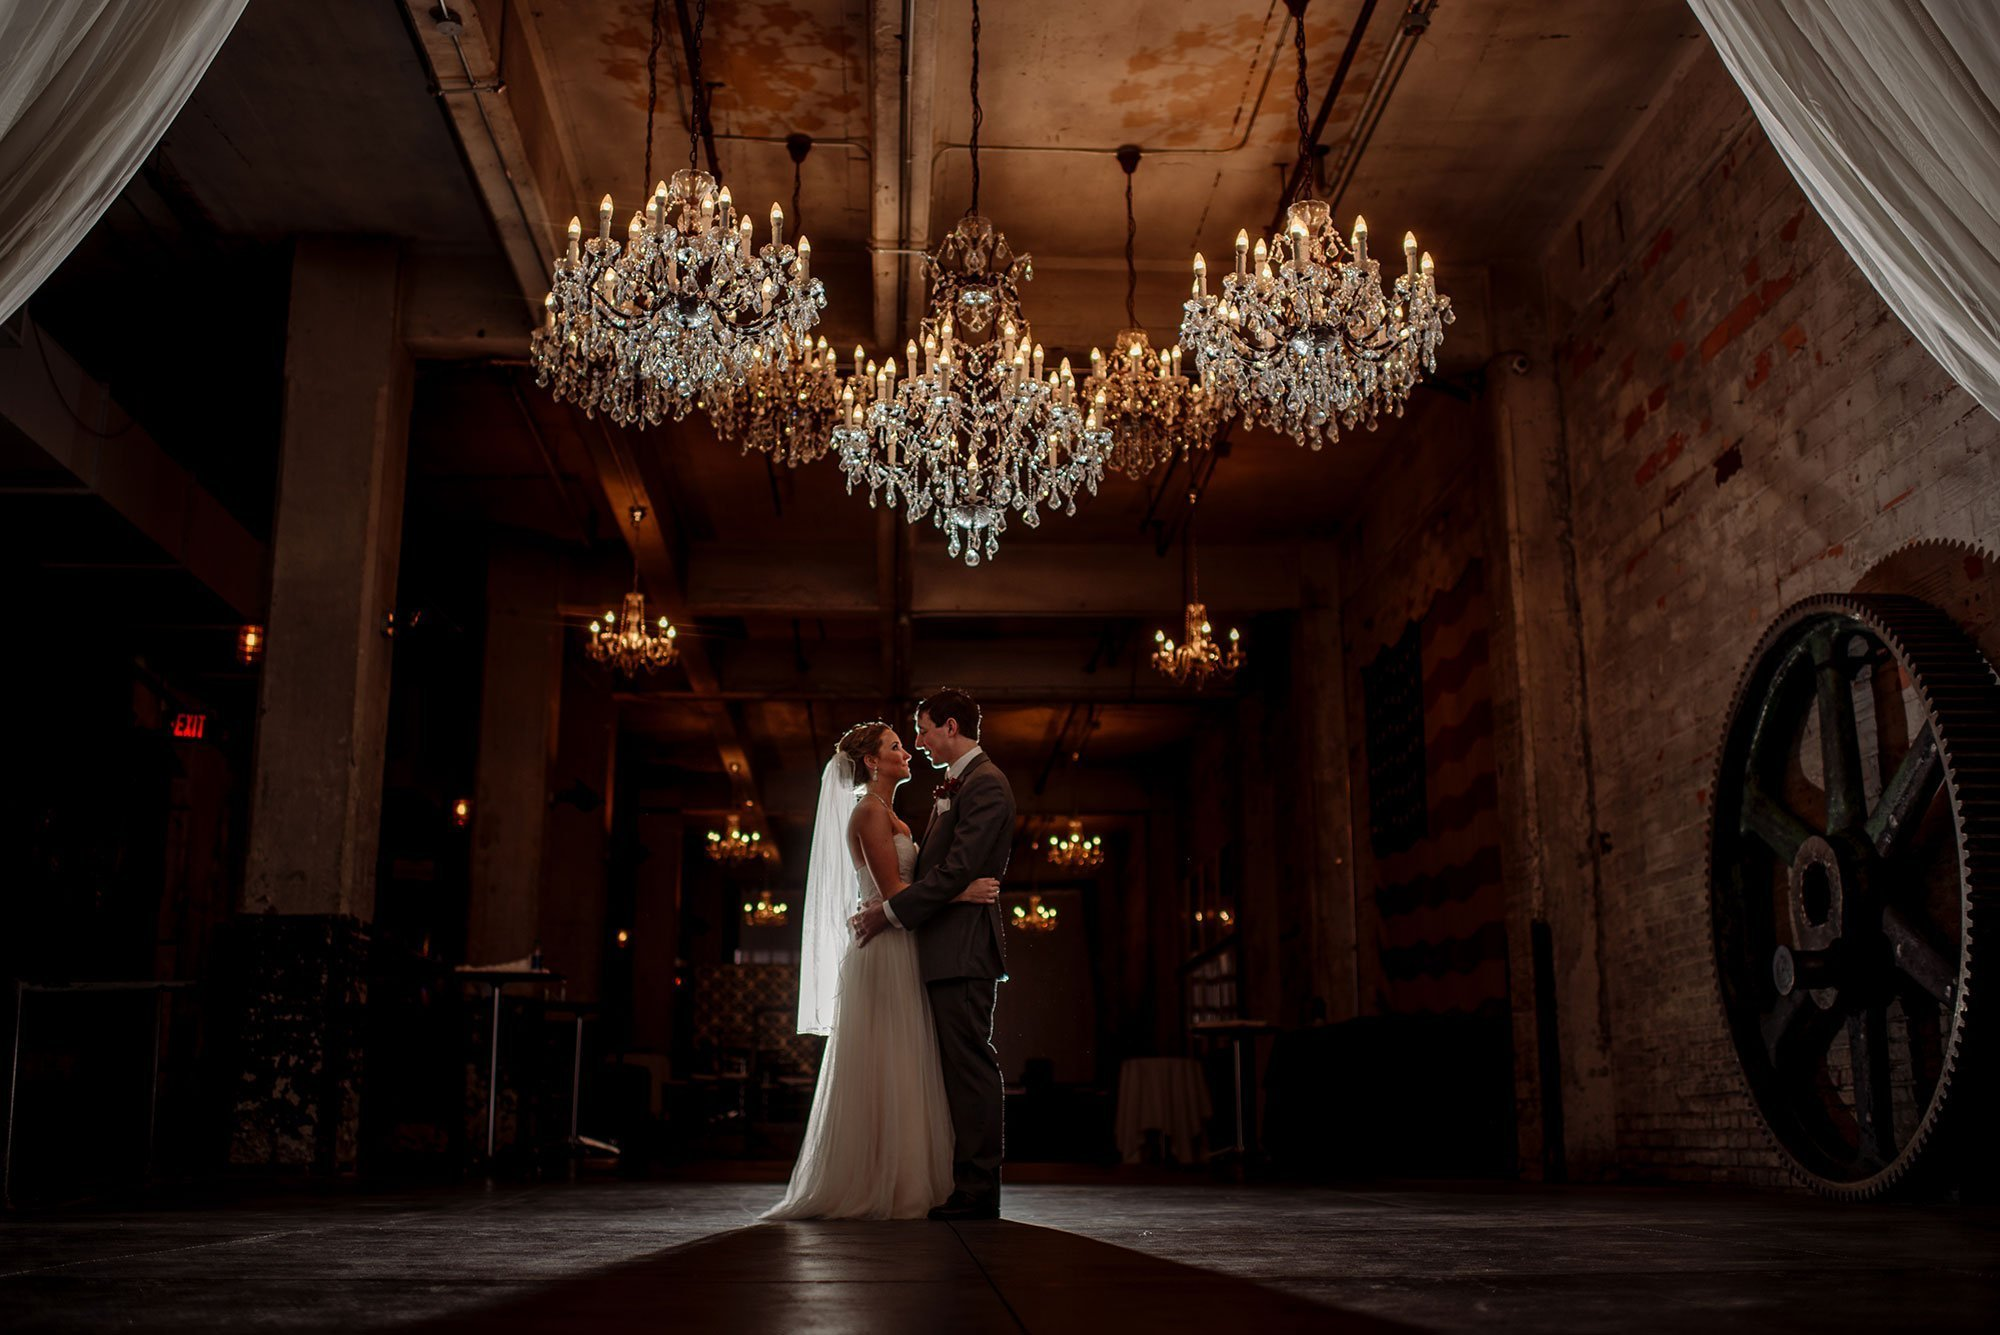 dramatic lighting Aria winter wedding couple under chandeliers